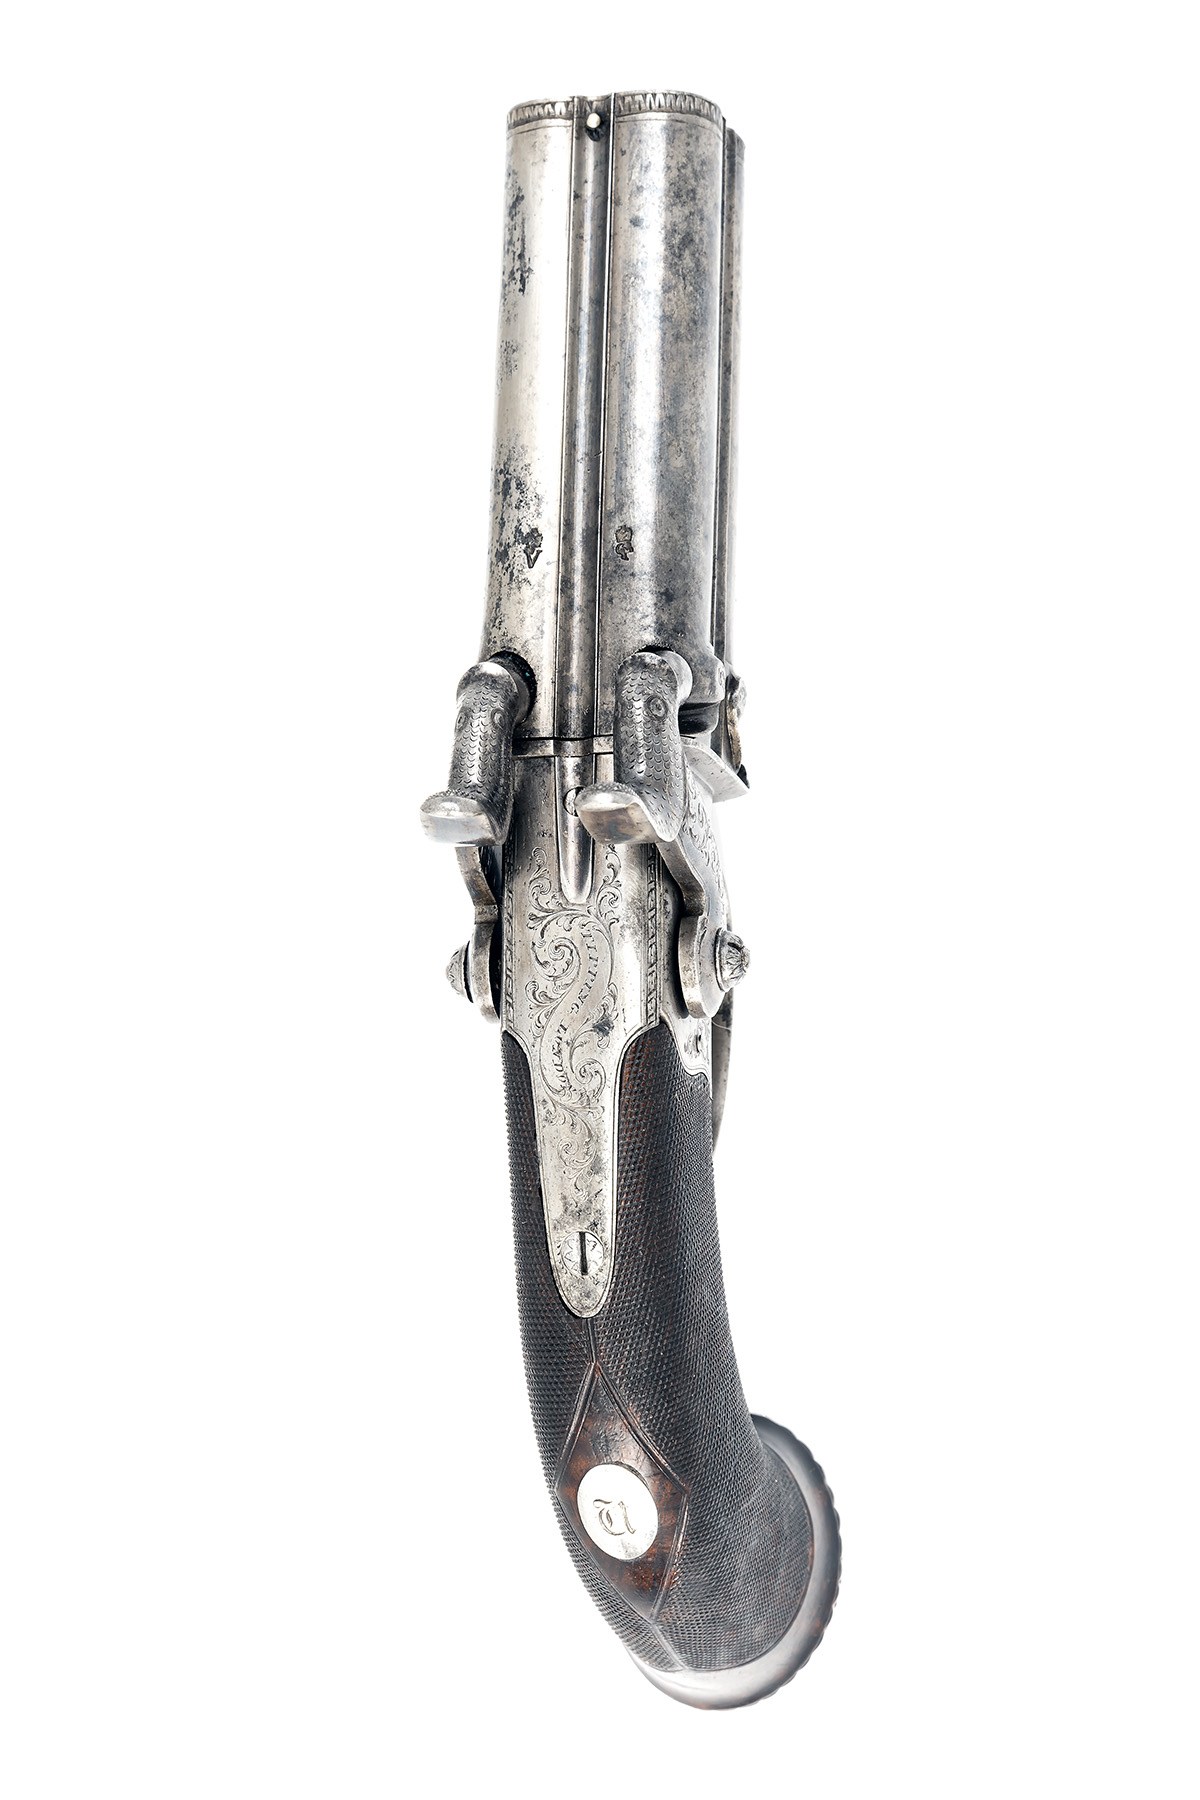 TIPPING, LONDON A CASED 48-BORE PERCUSSION FOUR-BARRELLED TURN-OVER PISTOL, no visible serial - Image 4 of 7